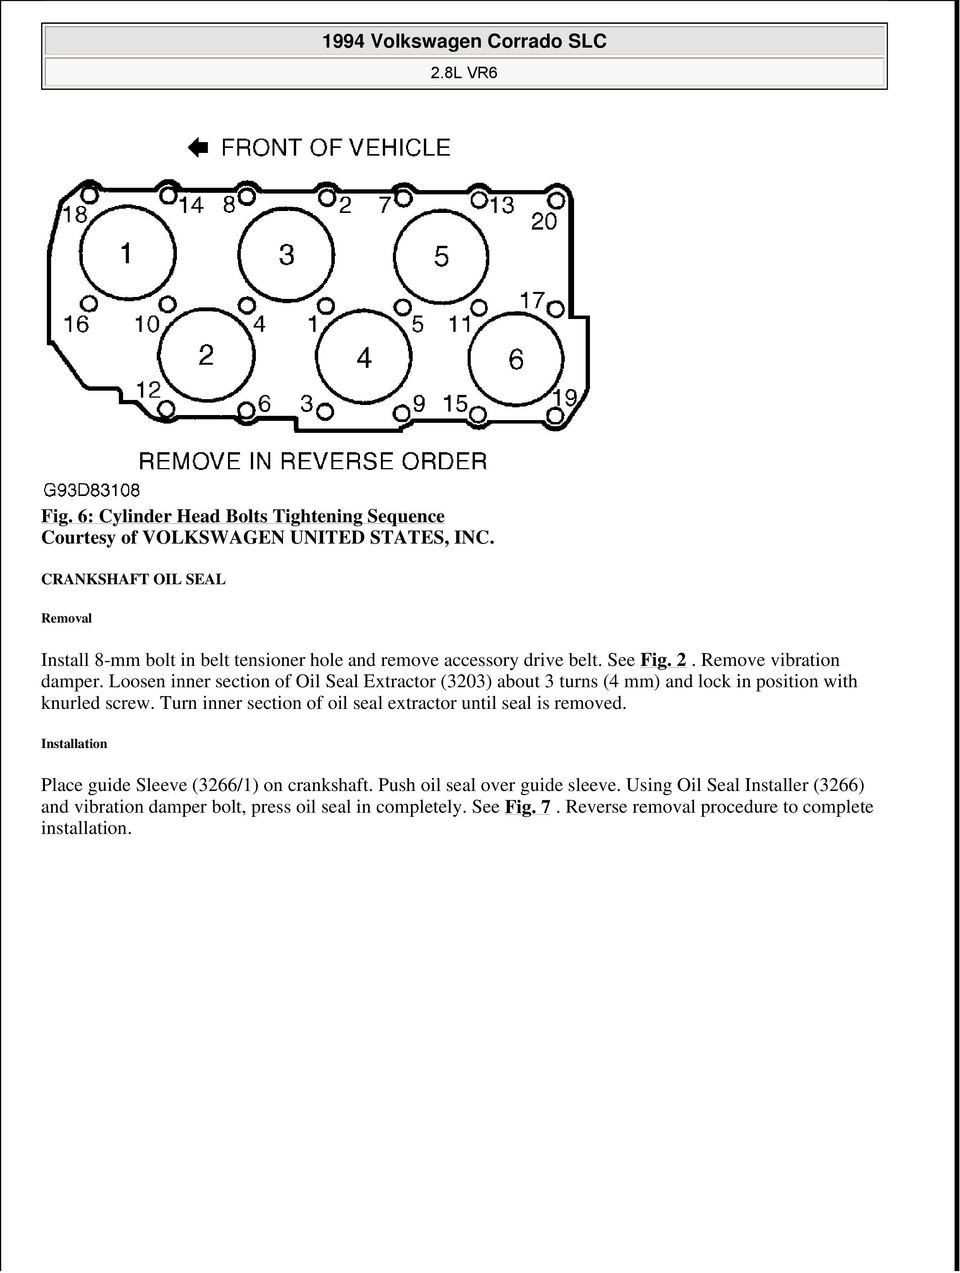 1994 Volkswagen Corrado Slc Pdf 2003 Mitsubishi Diamante Fuse Puller Box Diagram Turn Inner Section Of Oil Seal Extractor Until Is Removed Installation Place Guide Sleeve